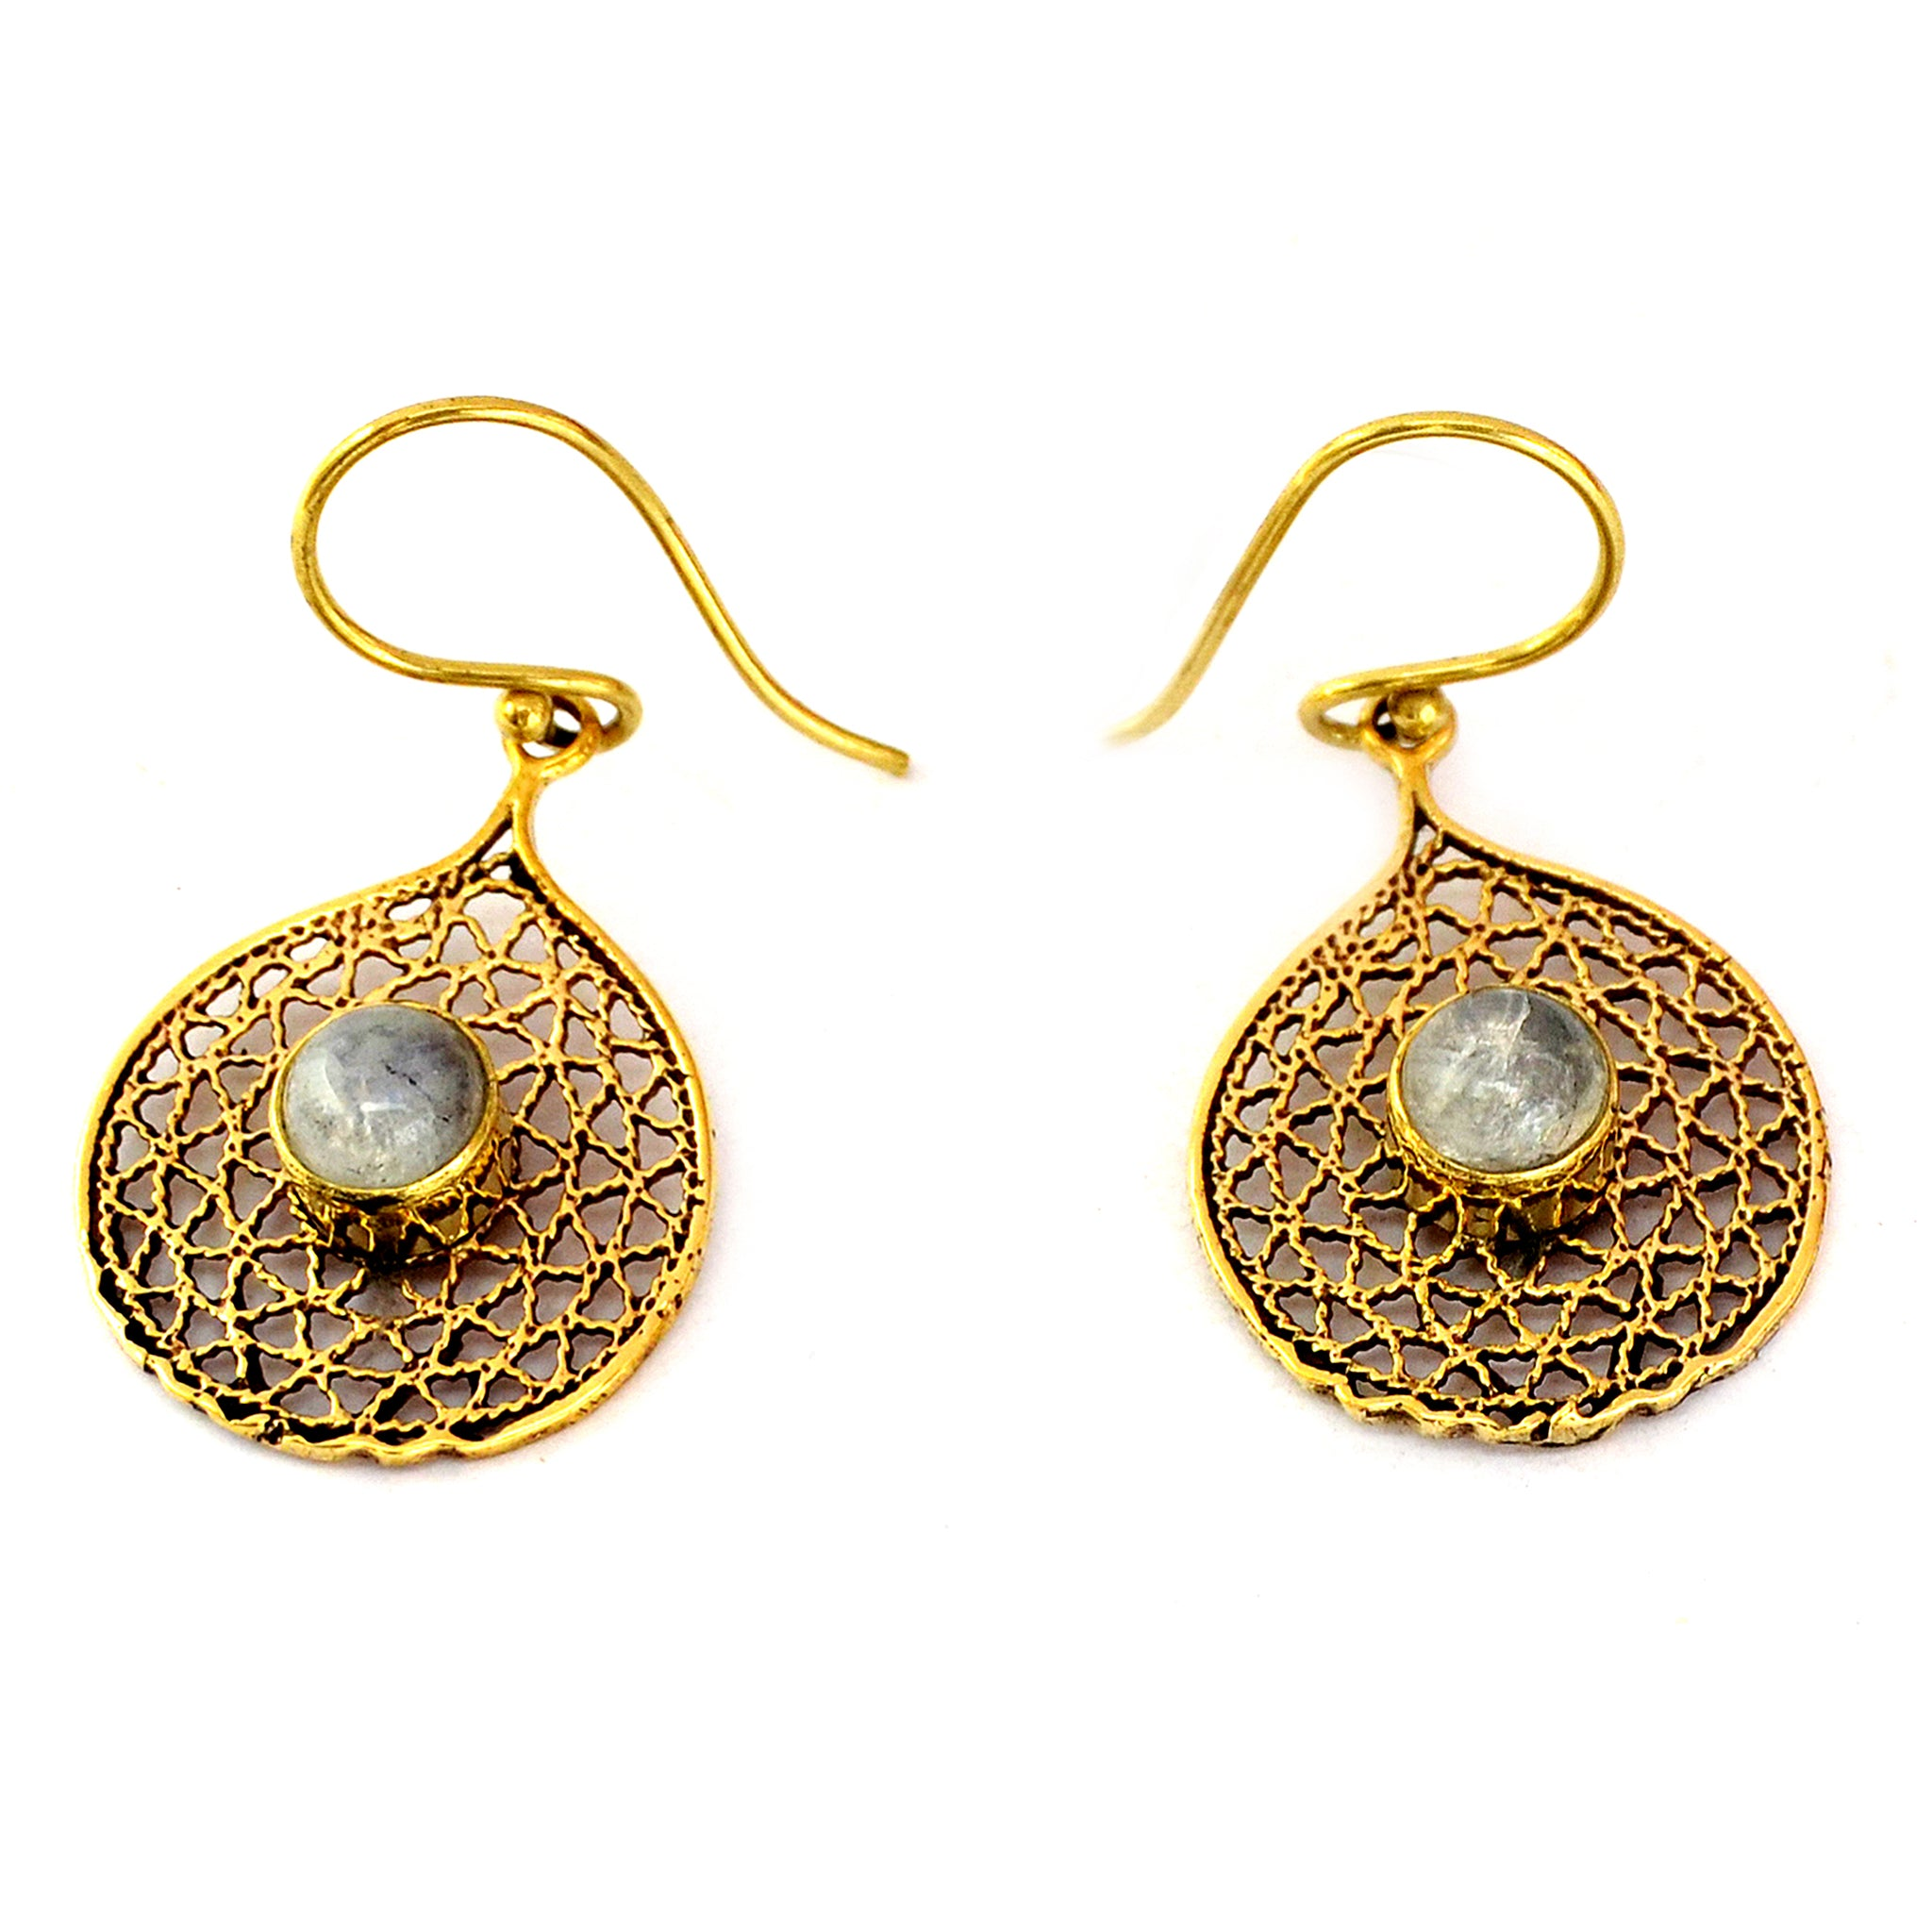 Gypsy filigree earrings